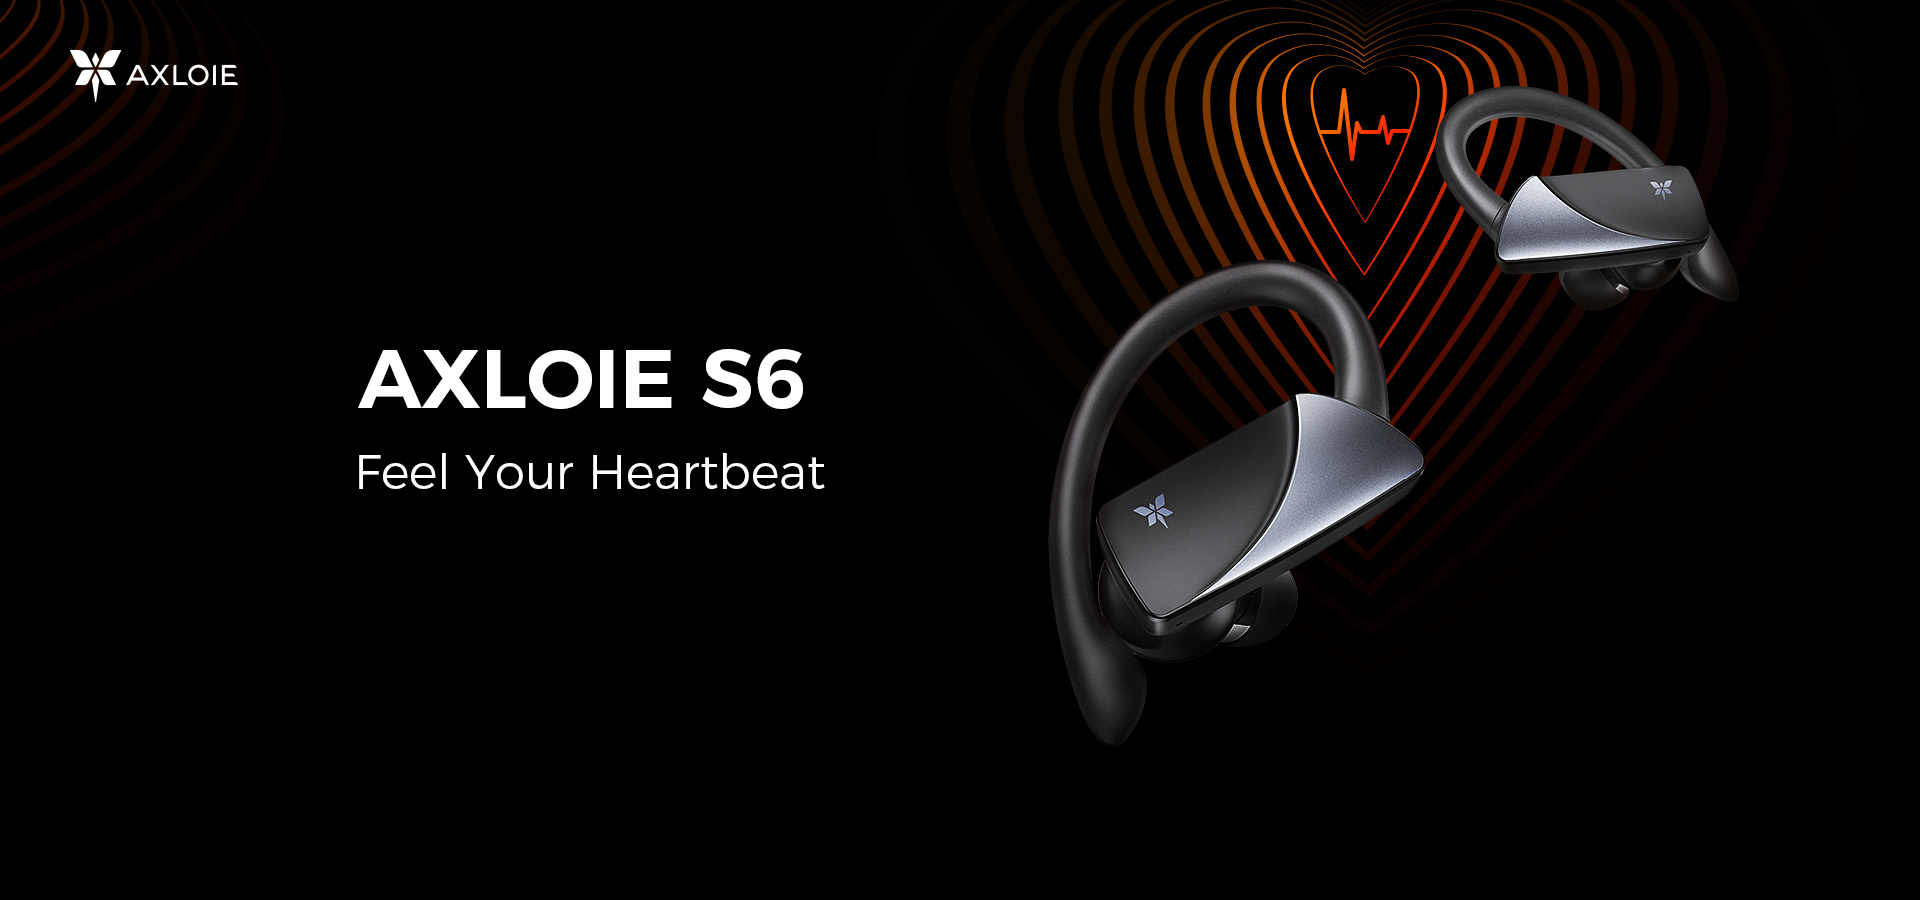 AXLOIE S7 and AXLOIE S6 Sports Earbuds Custom Designed for Fitness Enthusiasts